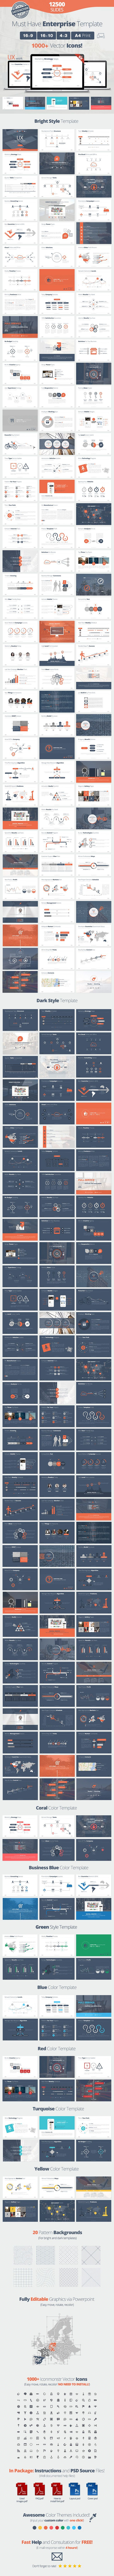 UX Enterprise Powerpoint Presentation Template - Business PowerPoint Templates